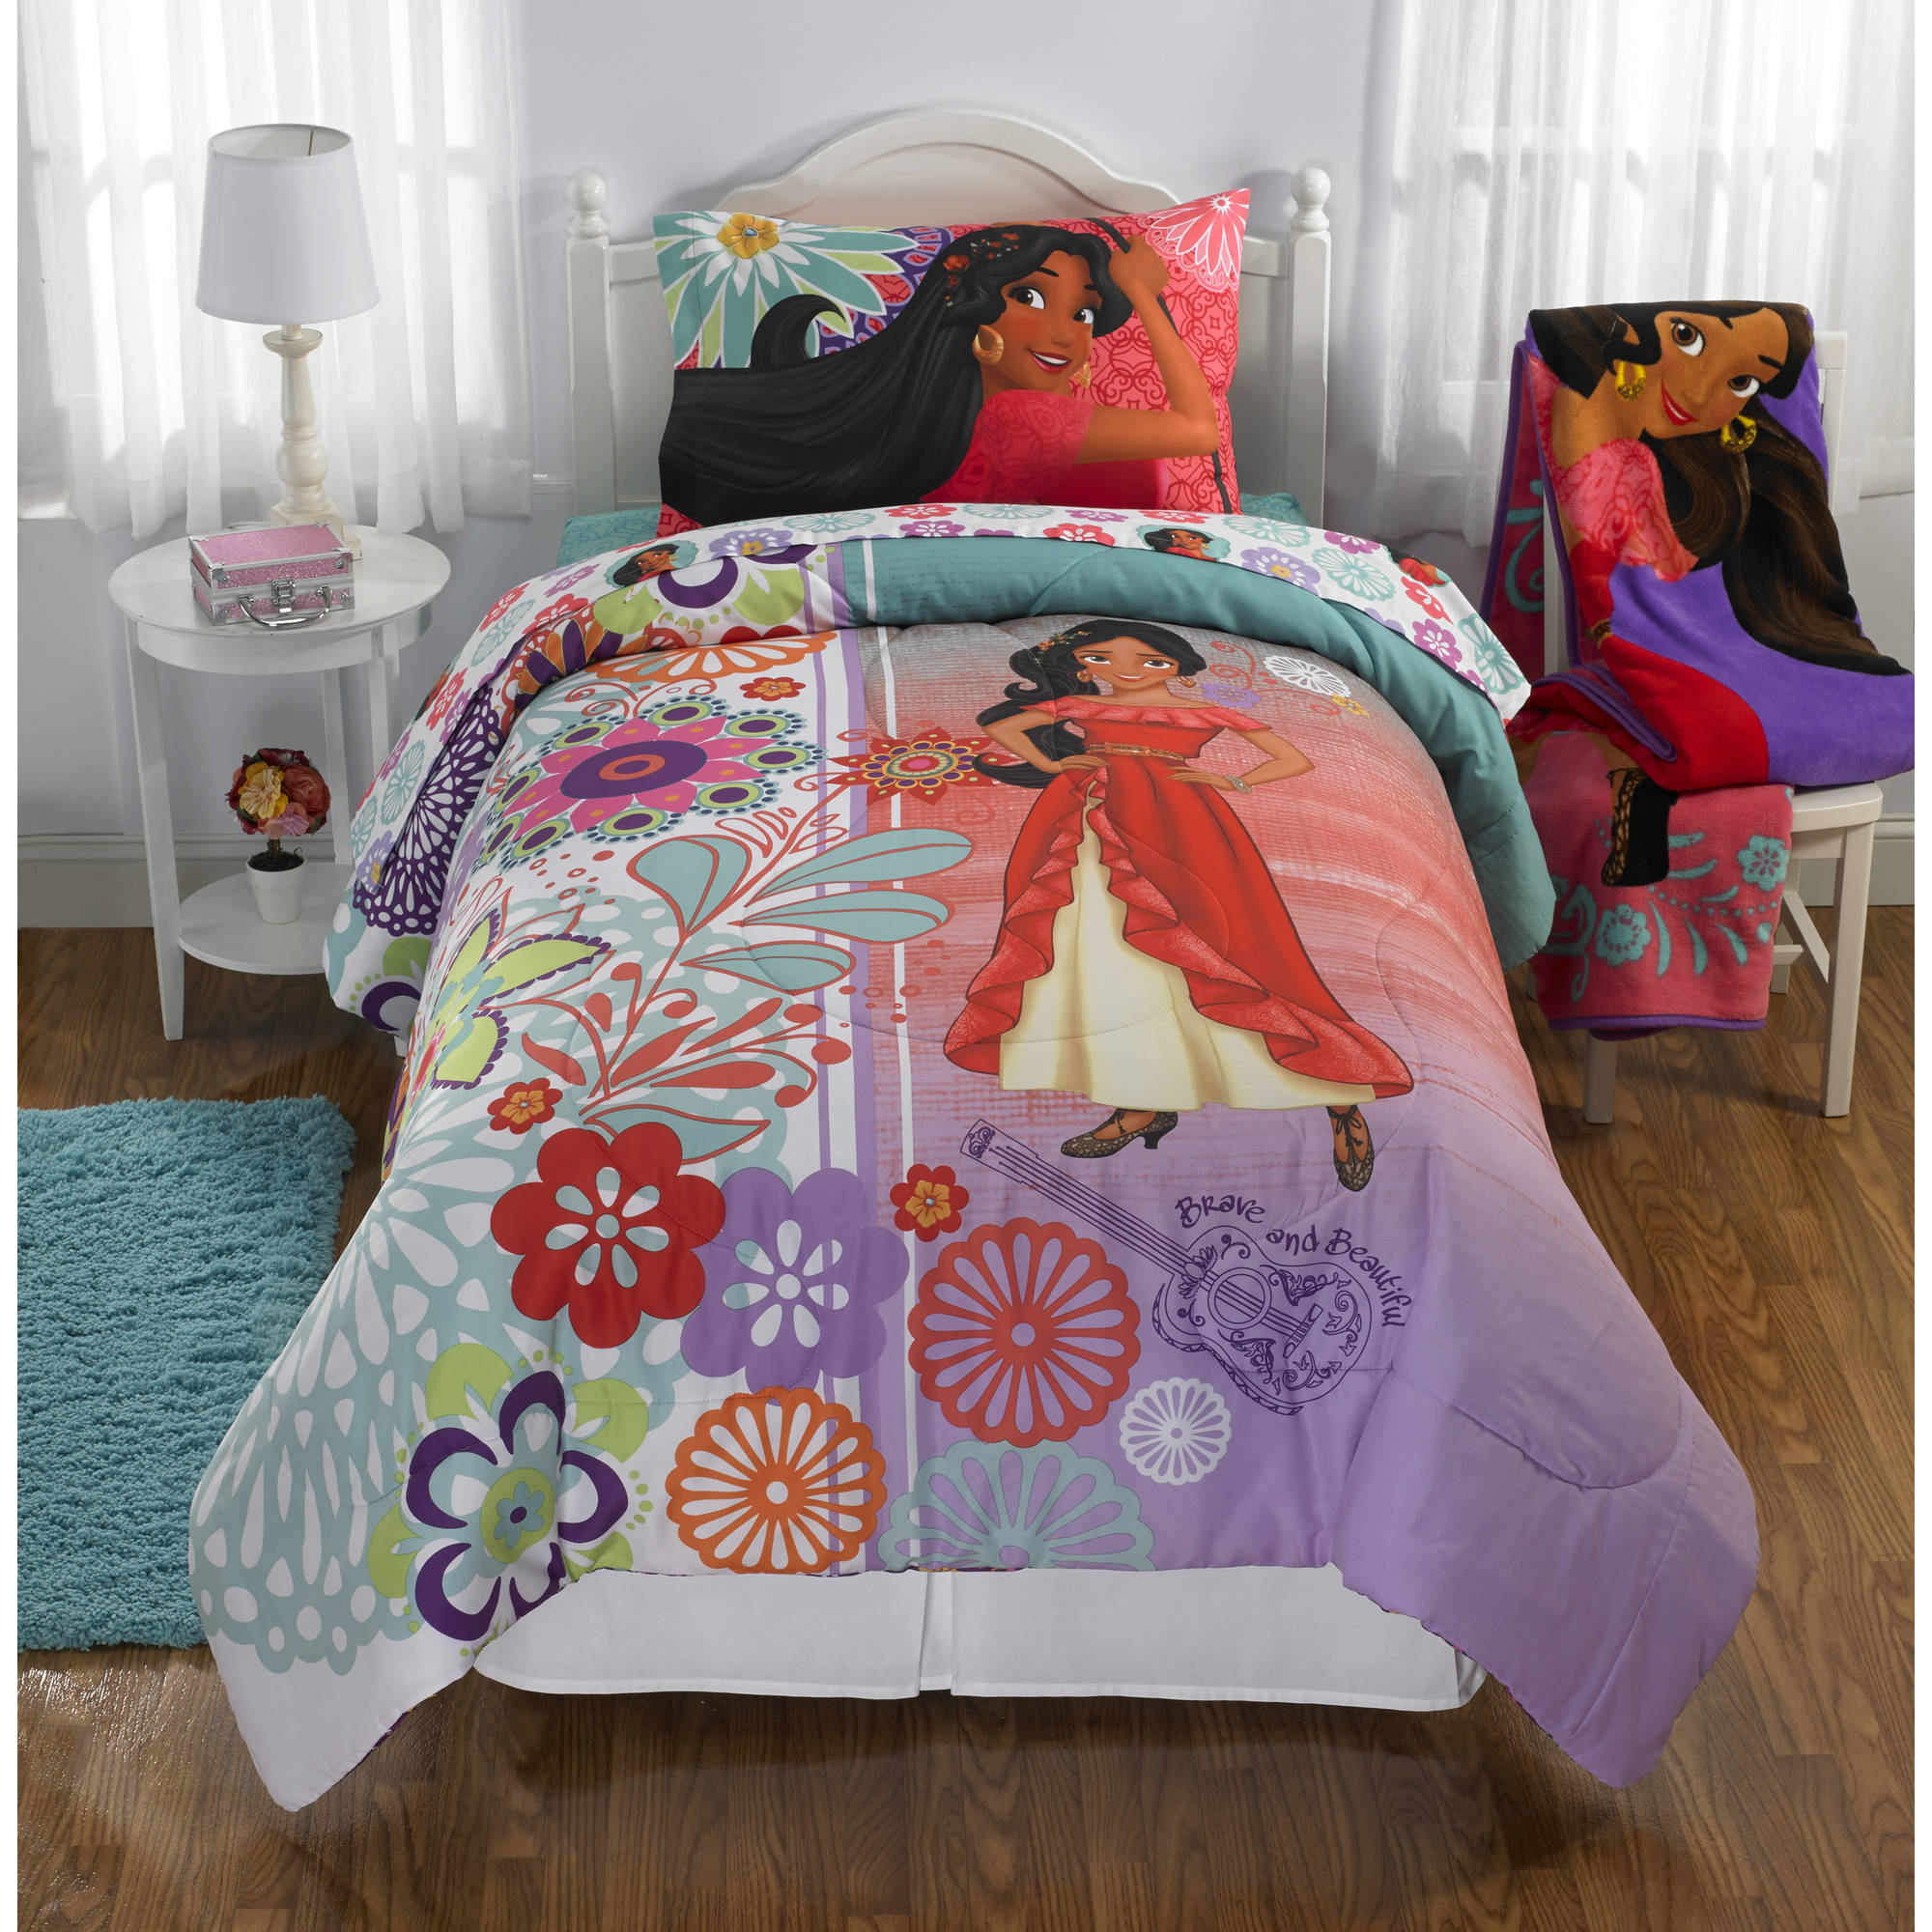 Elena Of Avalor 'Let Your Heart Sing' Reversible Twin/Full Bedding Comforter